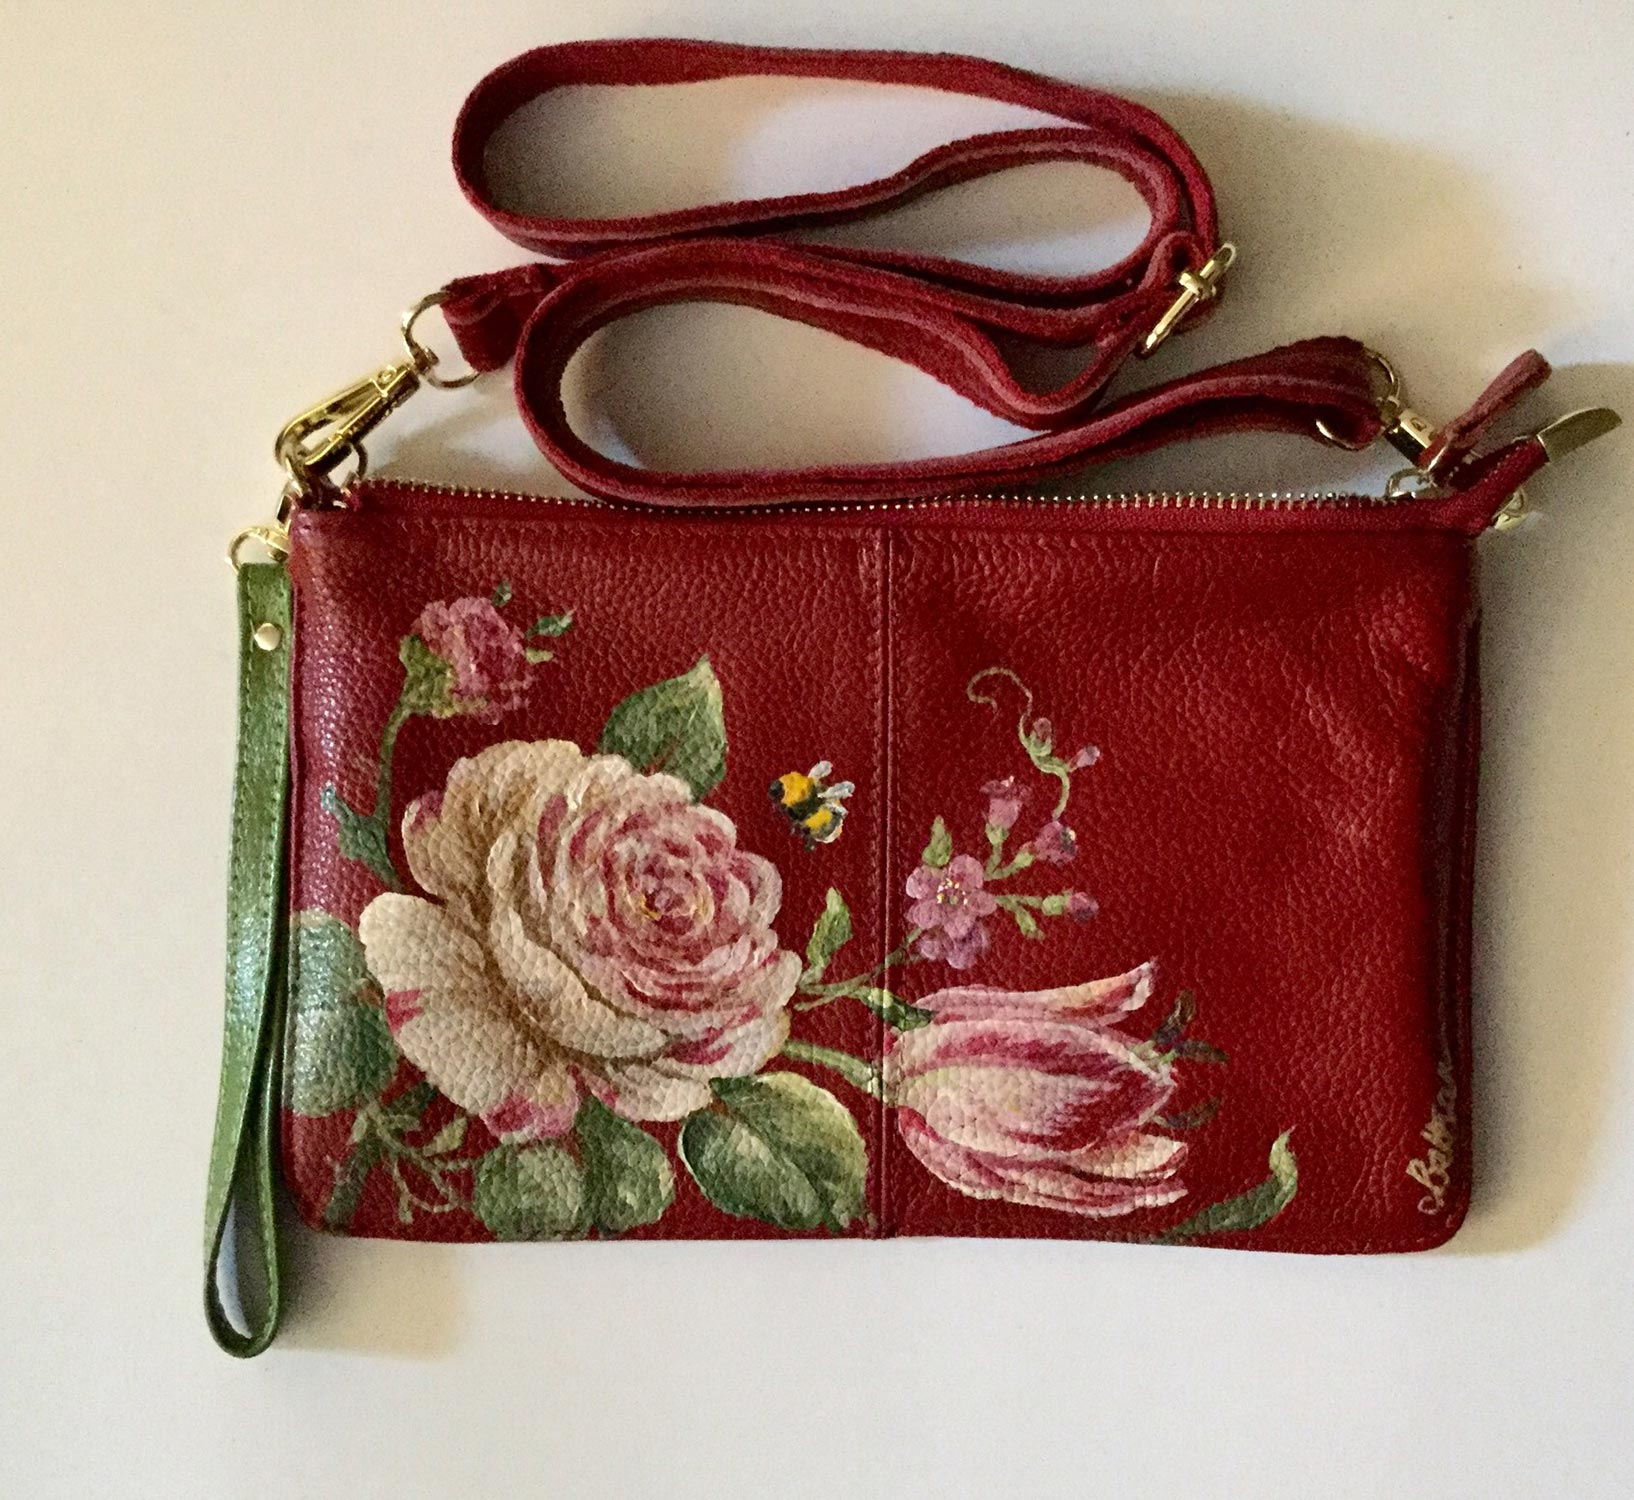 Hand-Painted Leather Cross Body Bag - Flowers